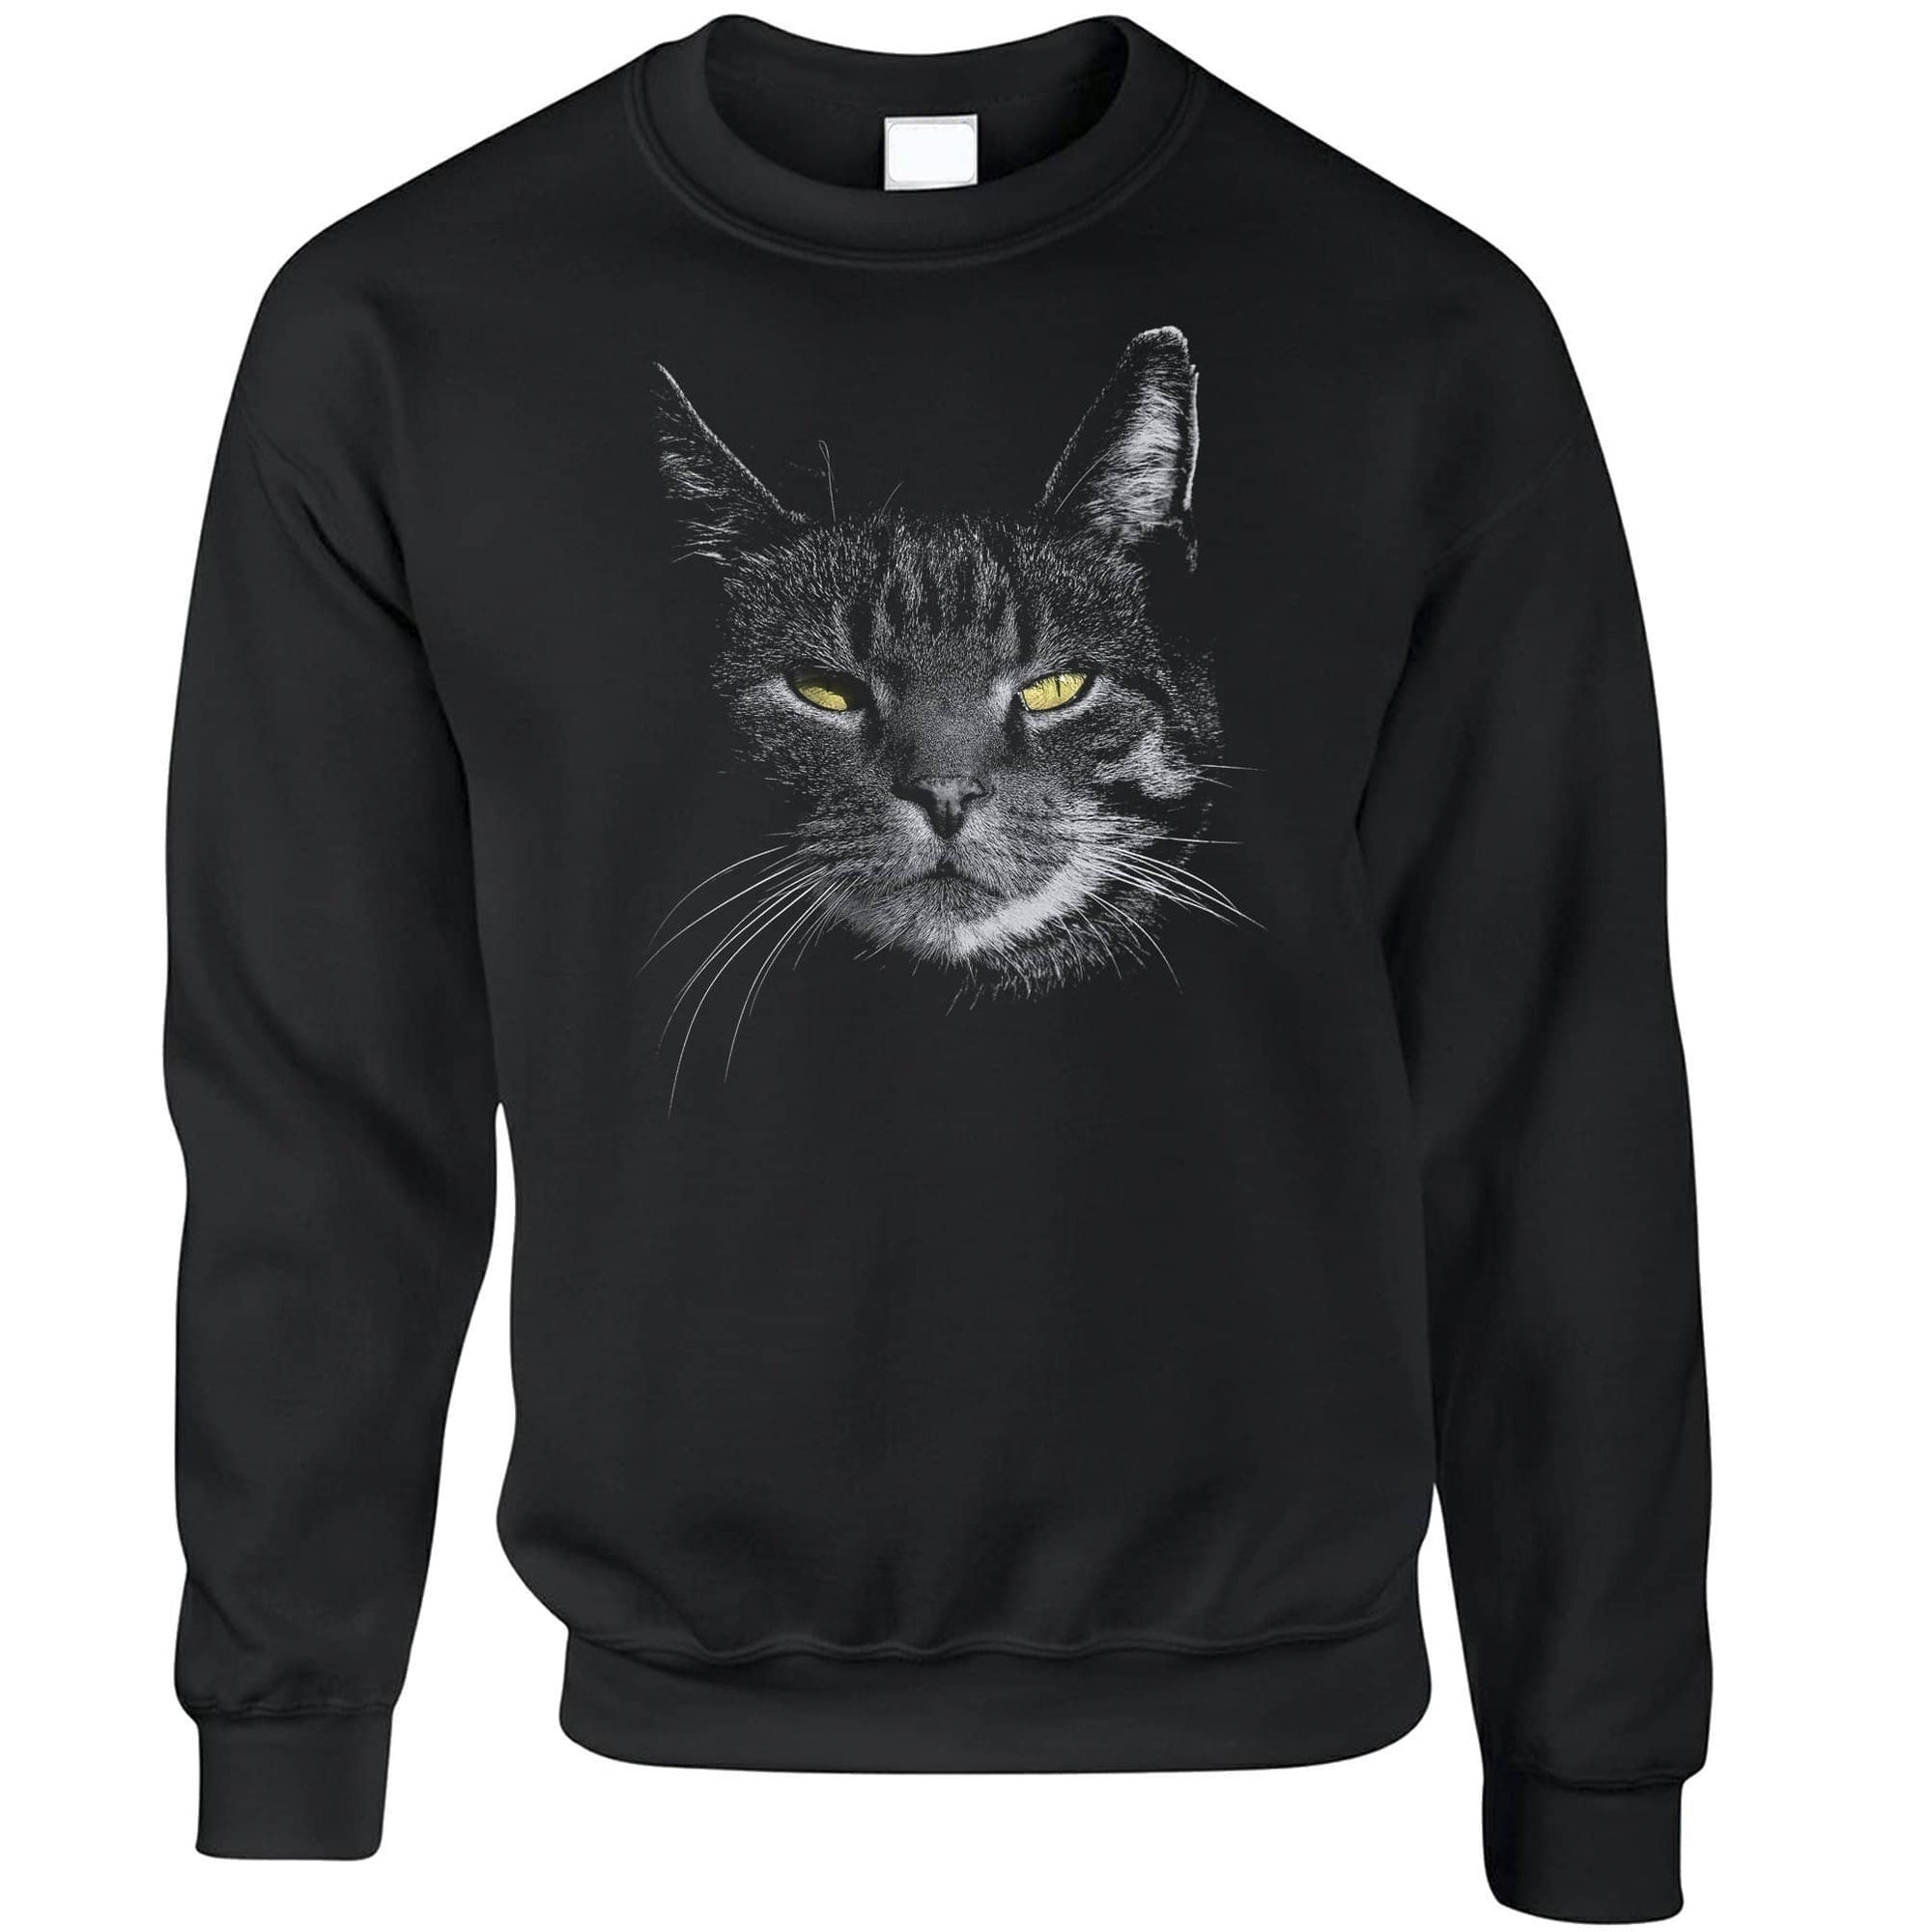 Cat Face Sweatshirt Cute Feline Head Photo